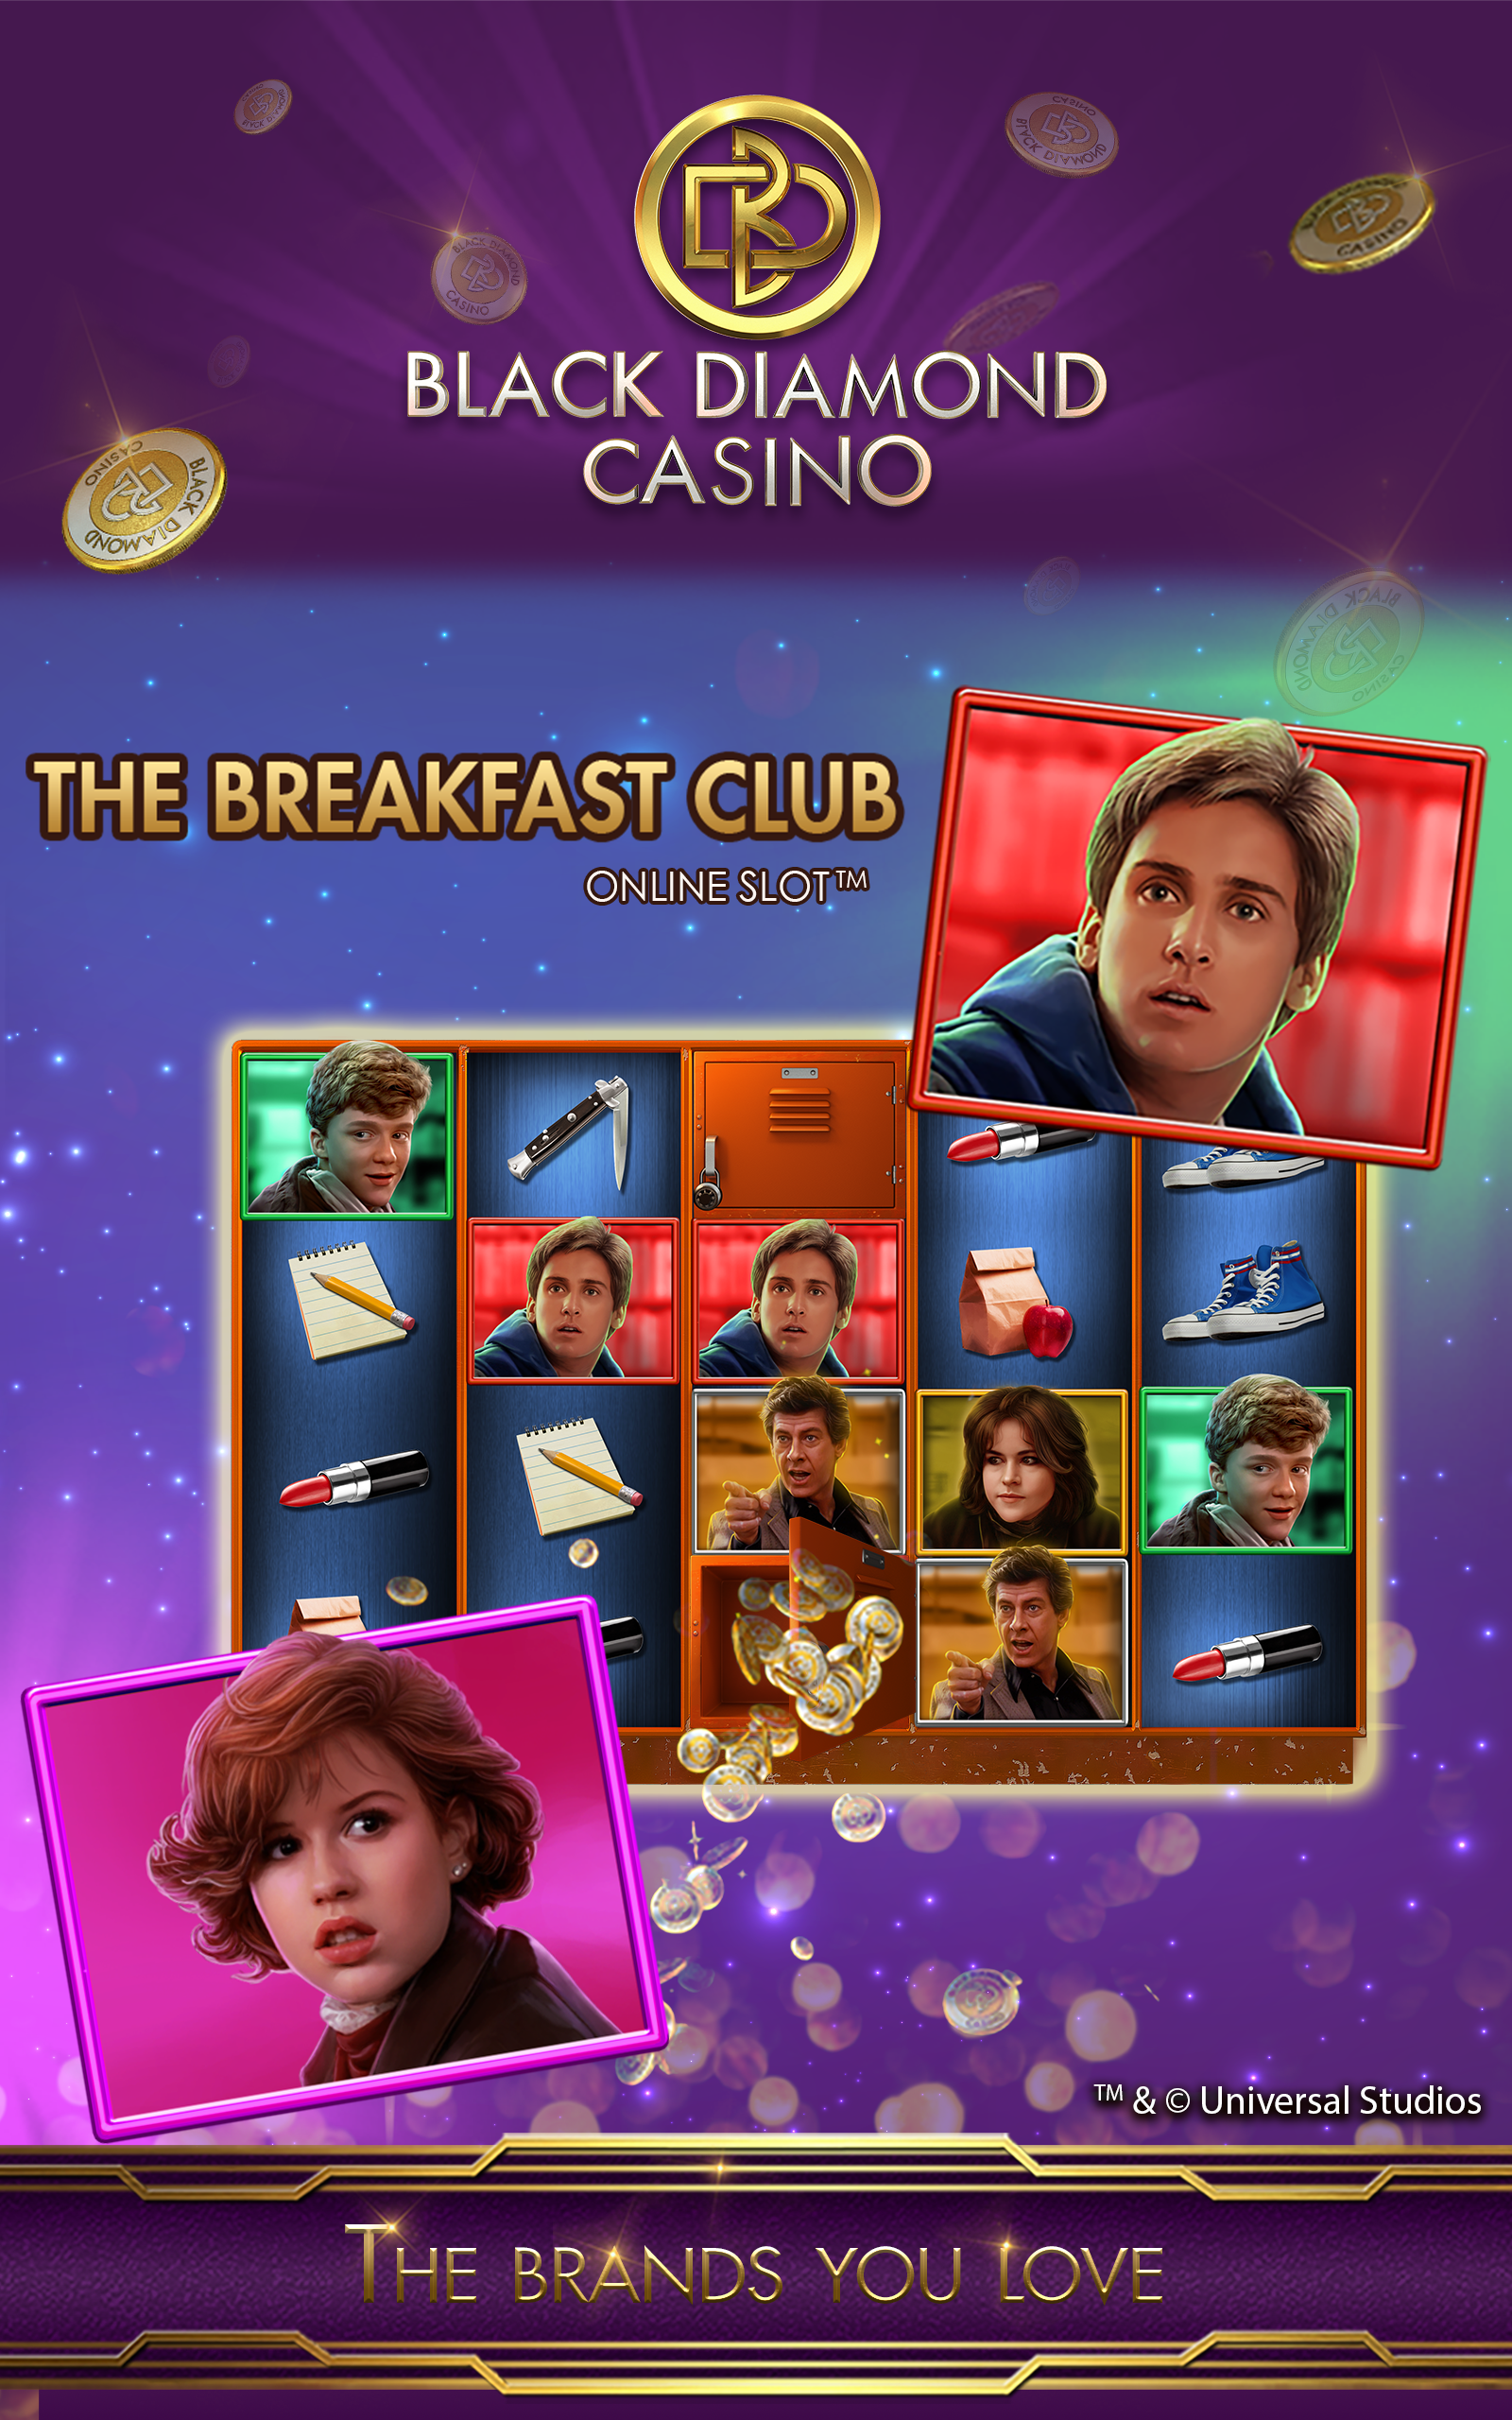 black diamond casino zynga free coins